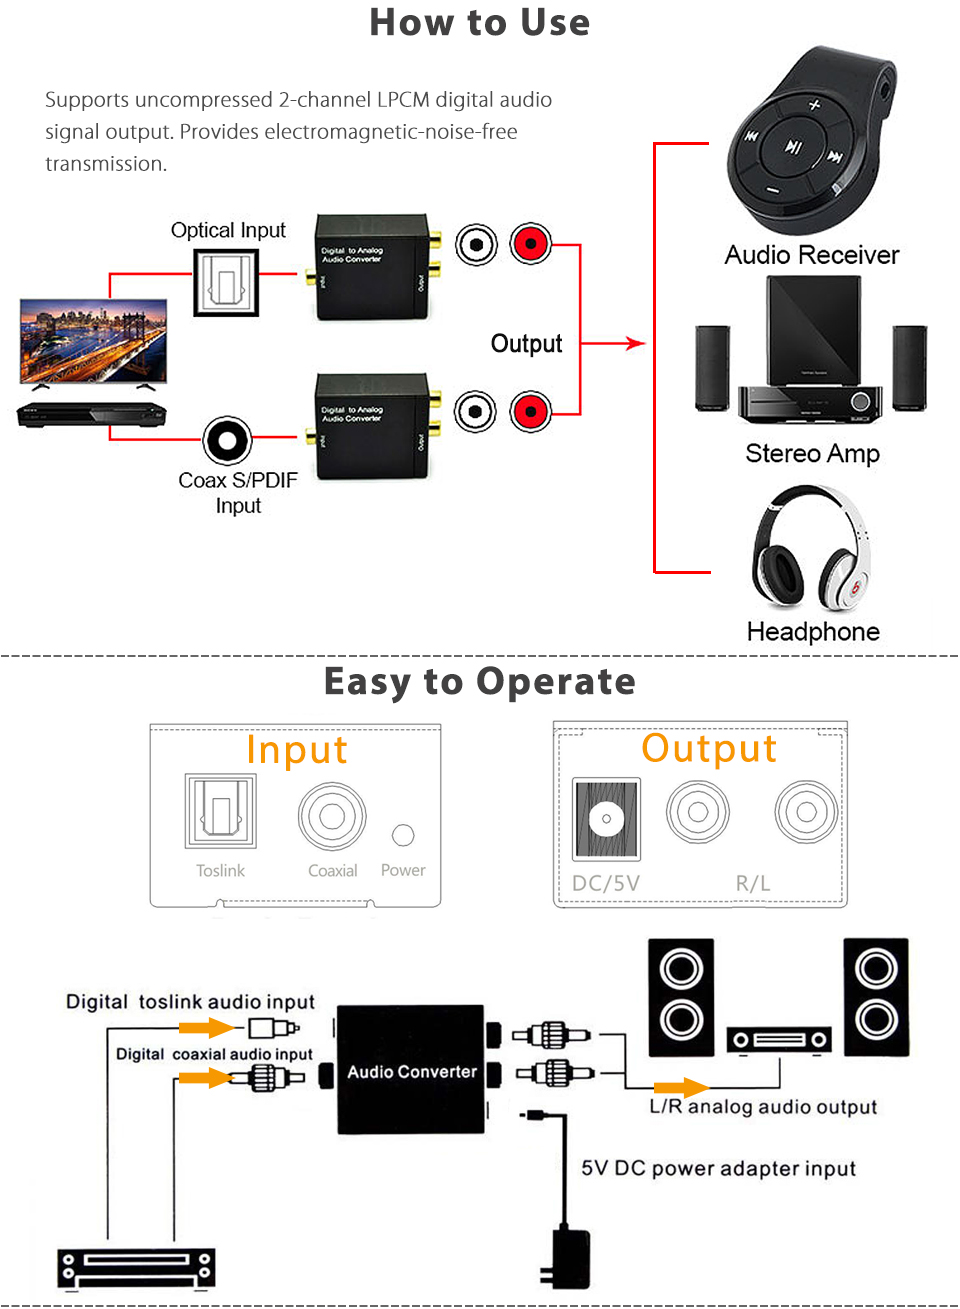 optical coaxial toslink digital to analog audio converter